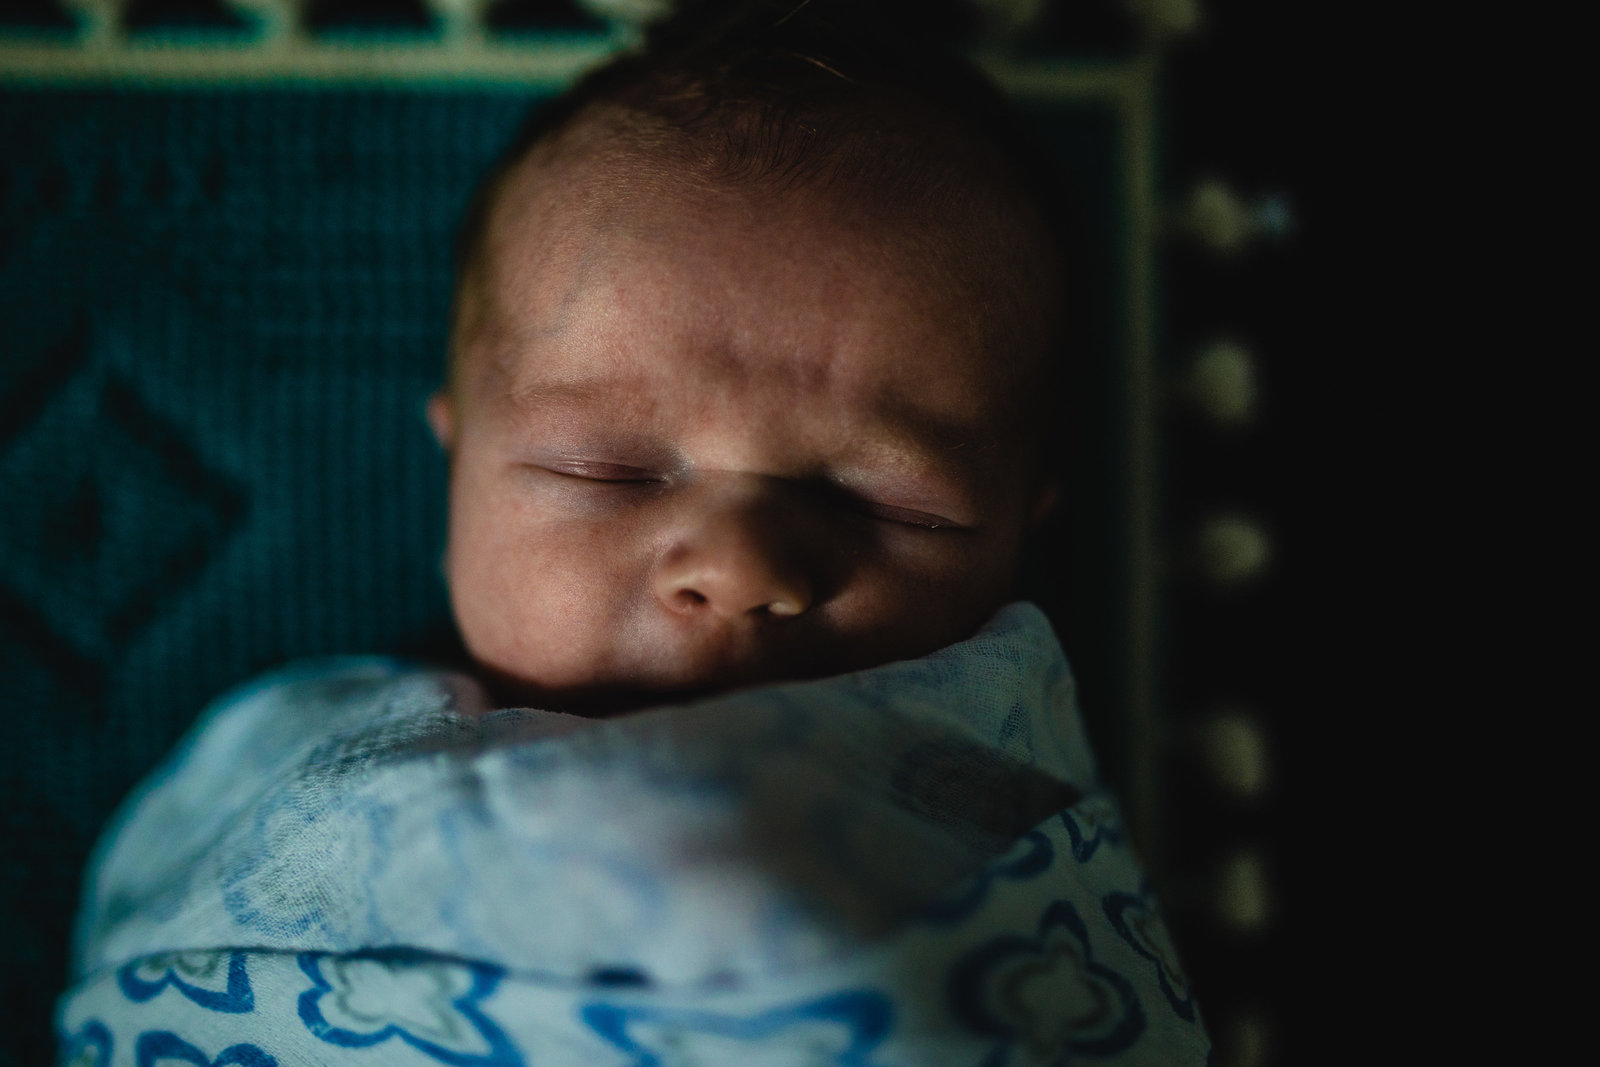 Portrait of newborn baby sleeping with blue blanket